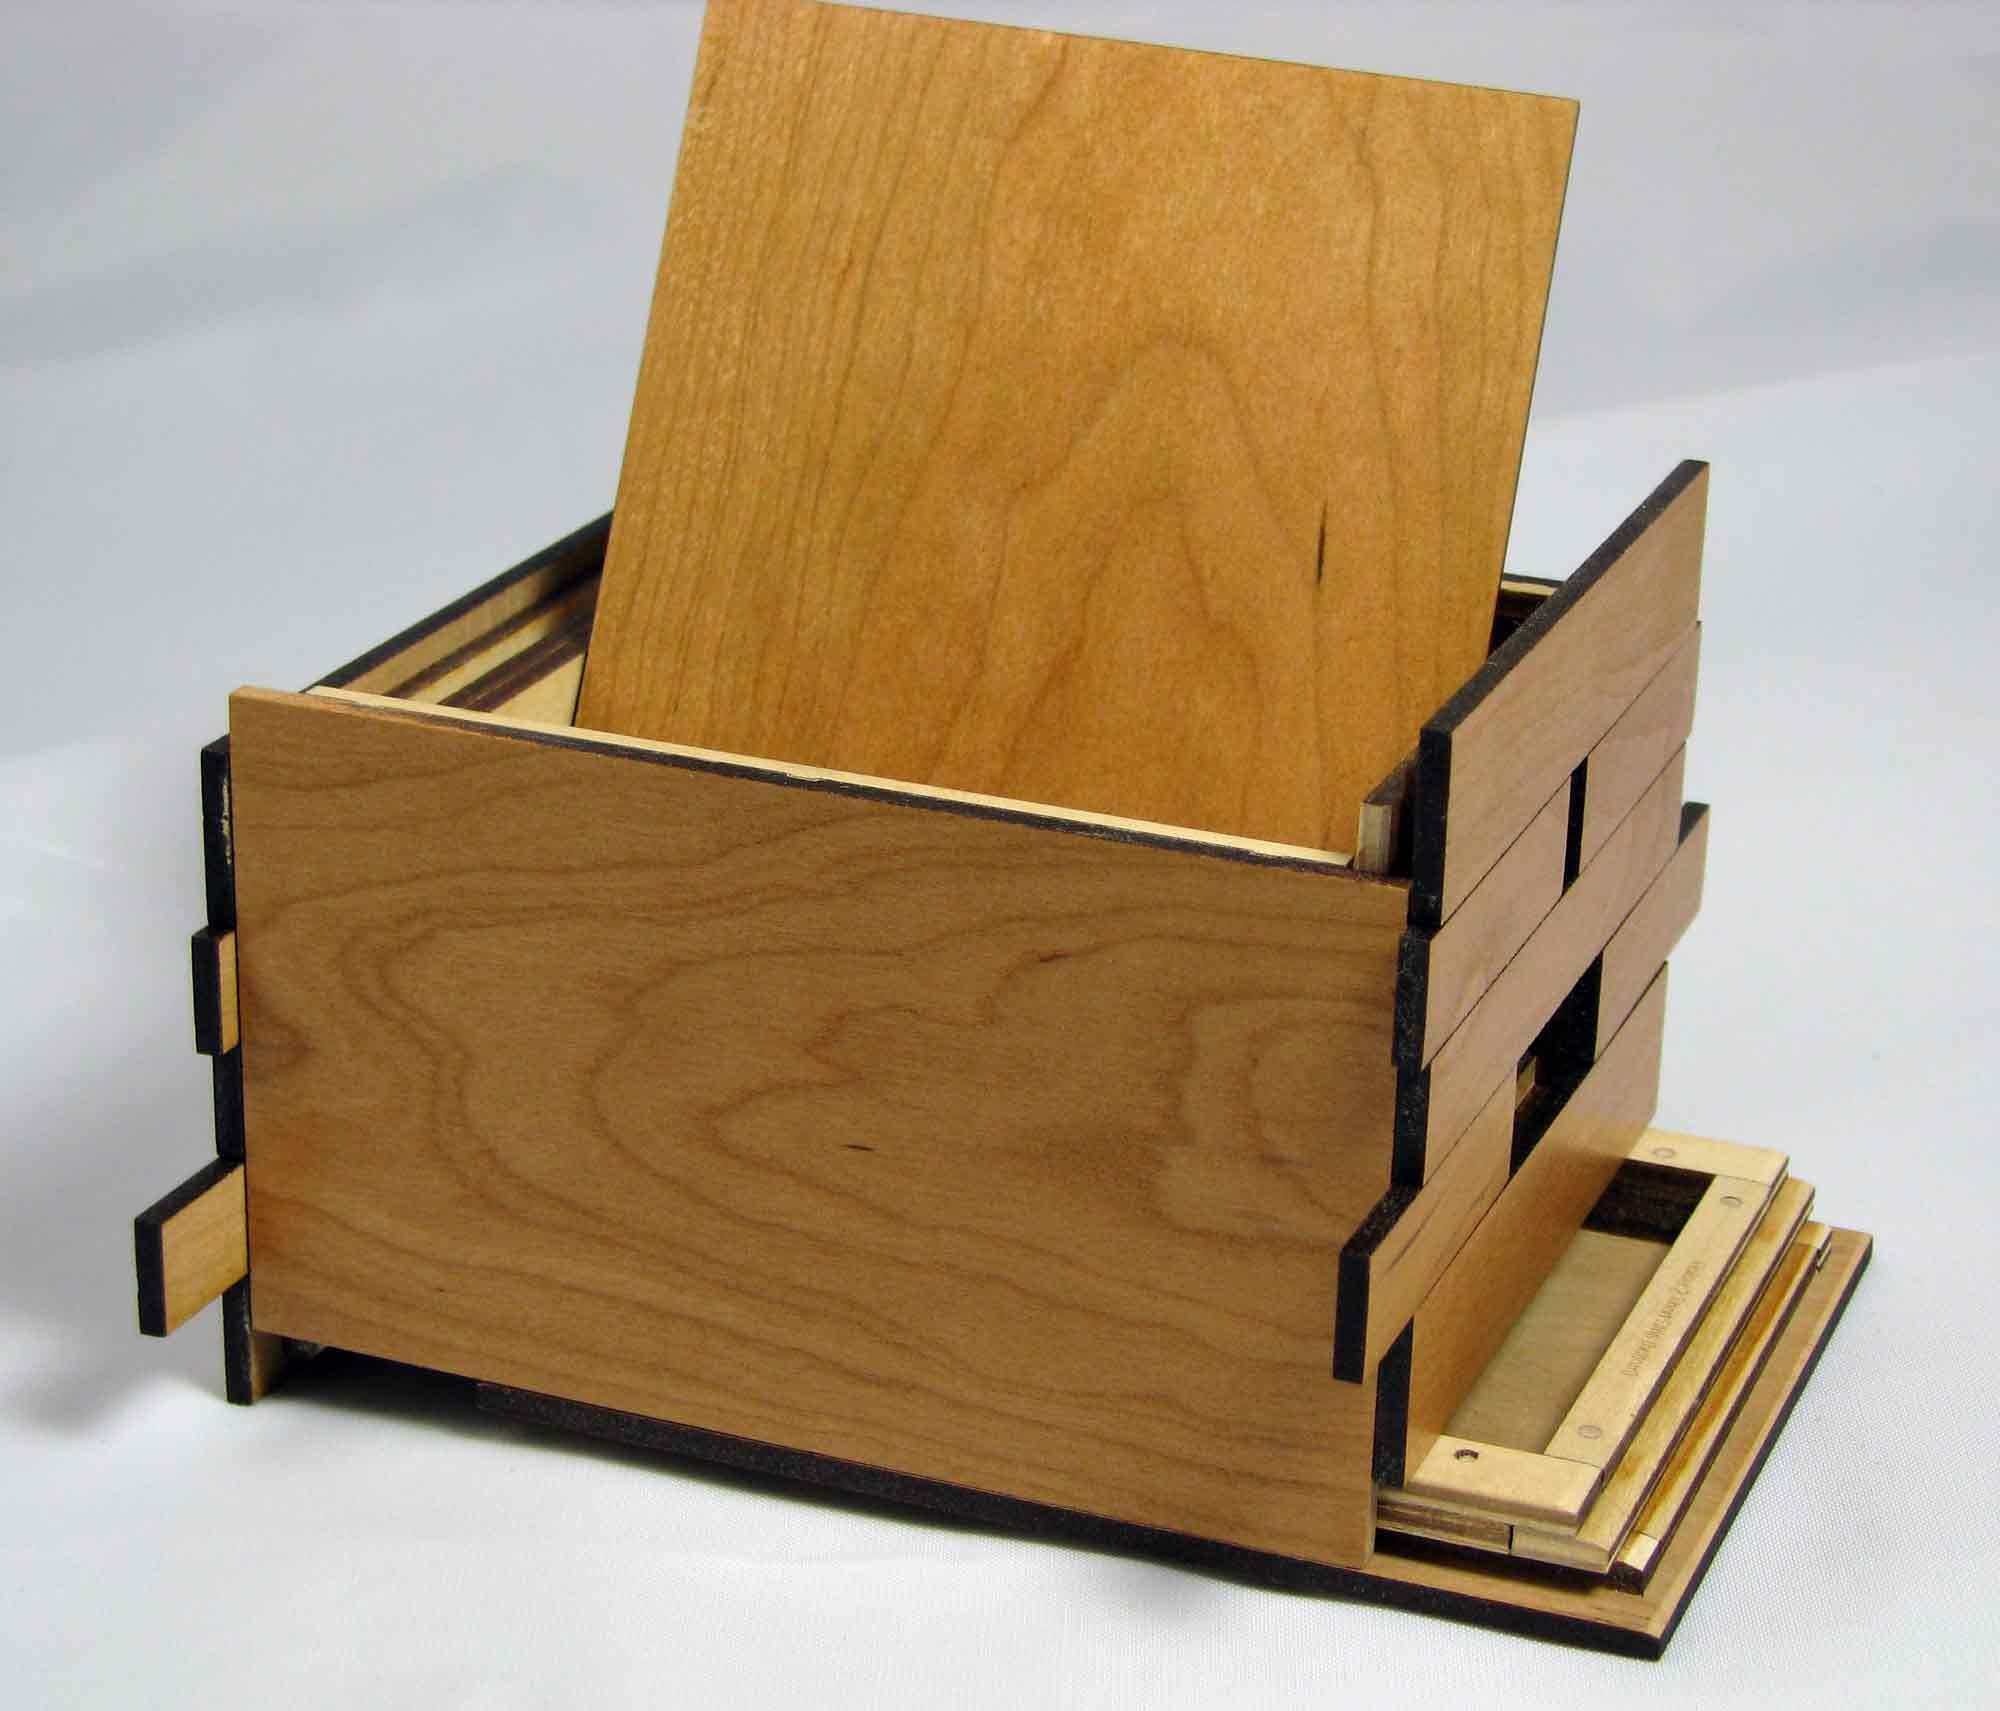 buy plans for japanese puzzle box ~ woodyplan